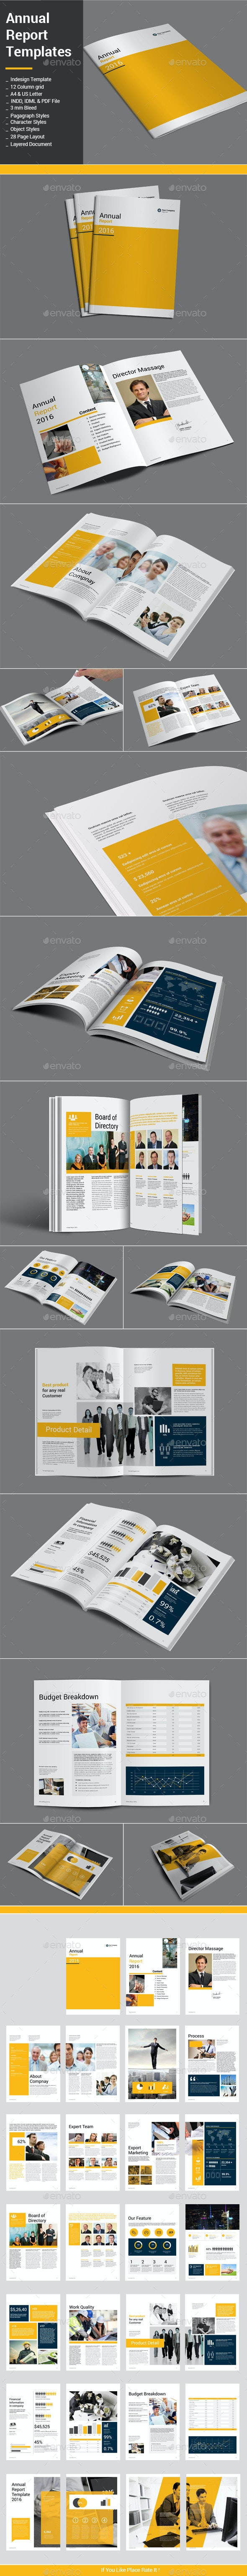 Annual Report Templates - Informational Brochures